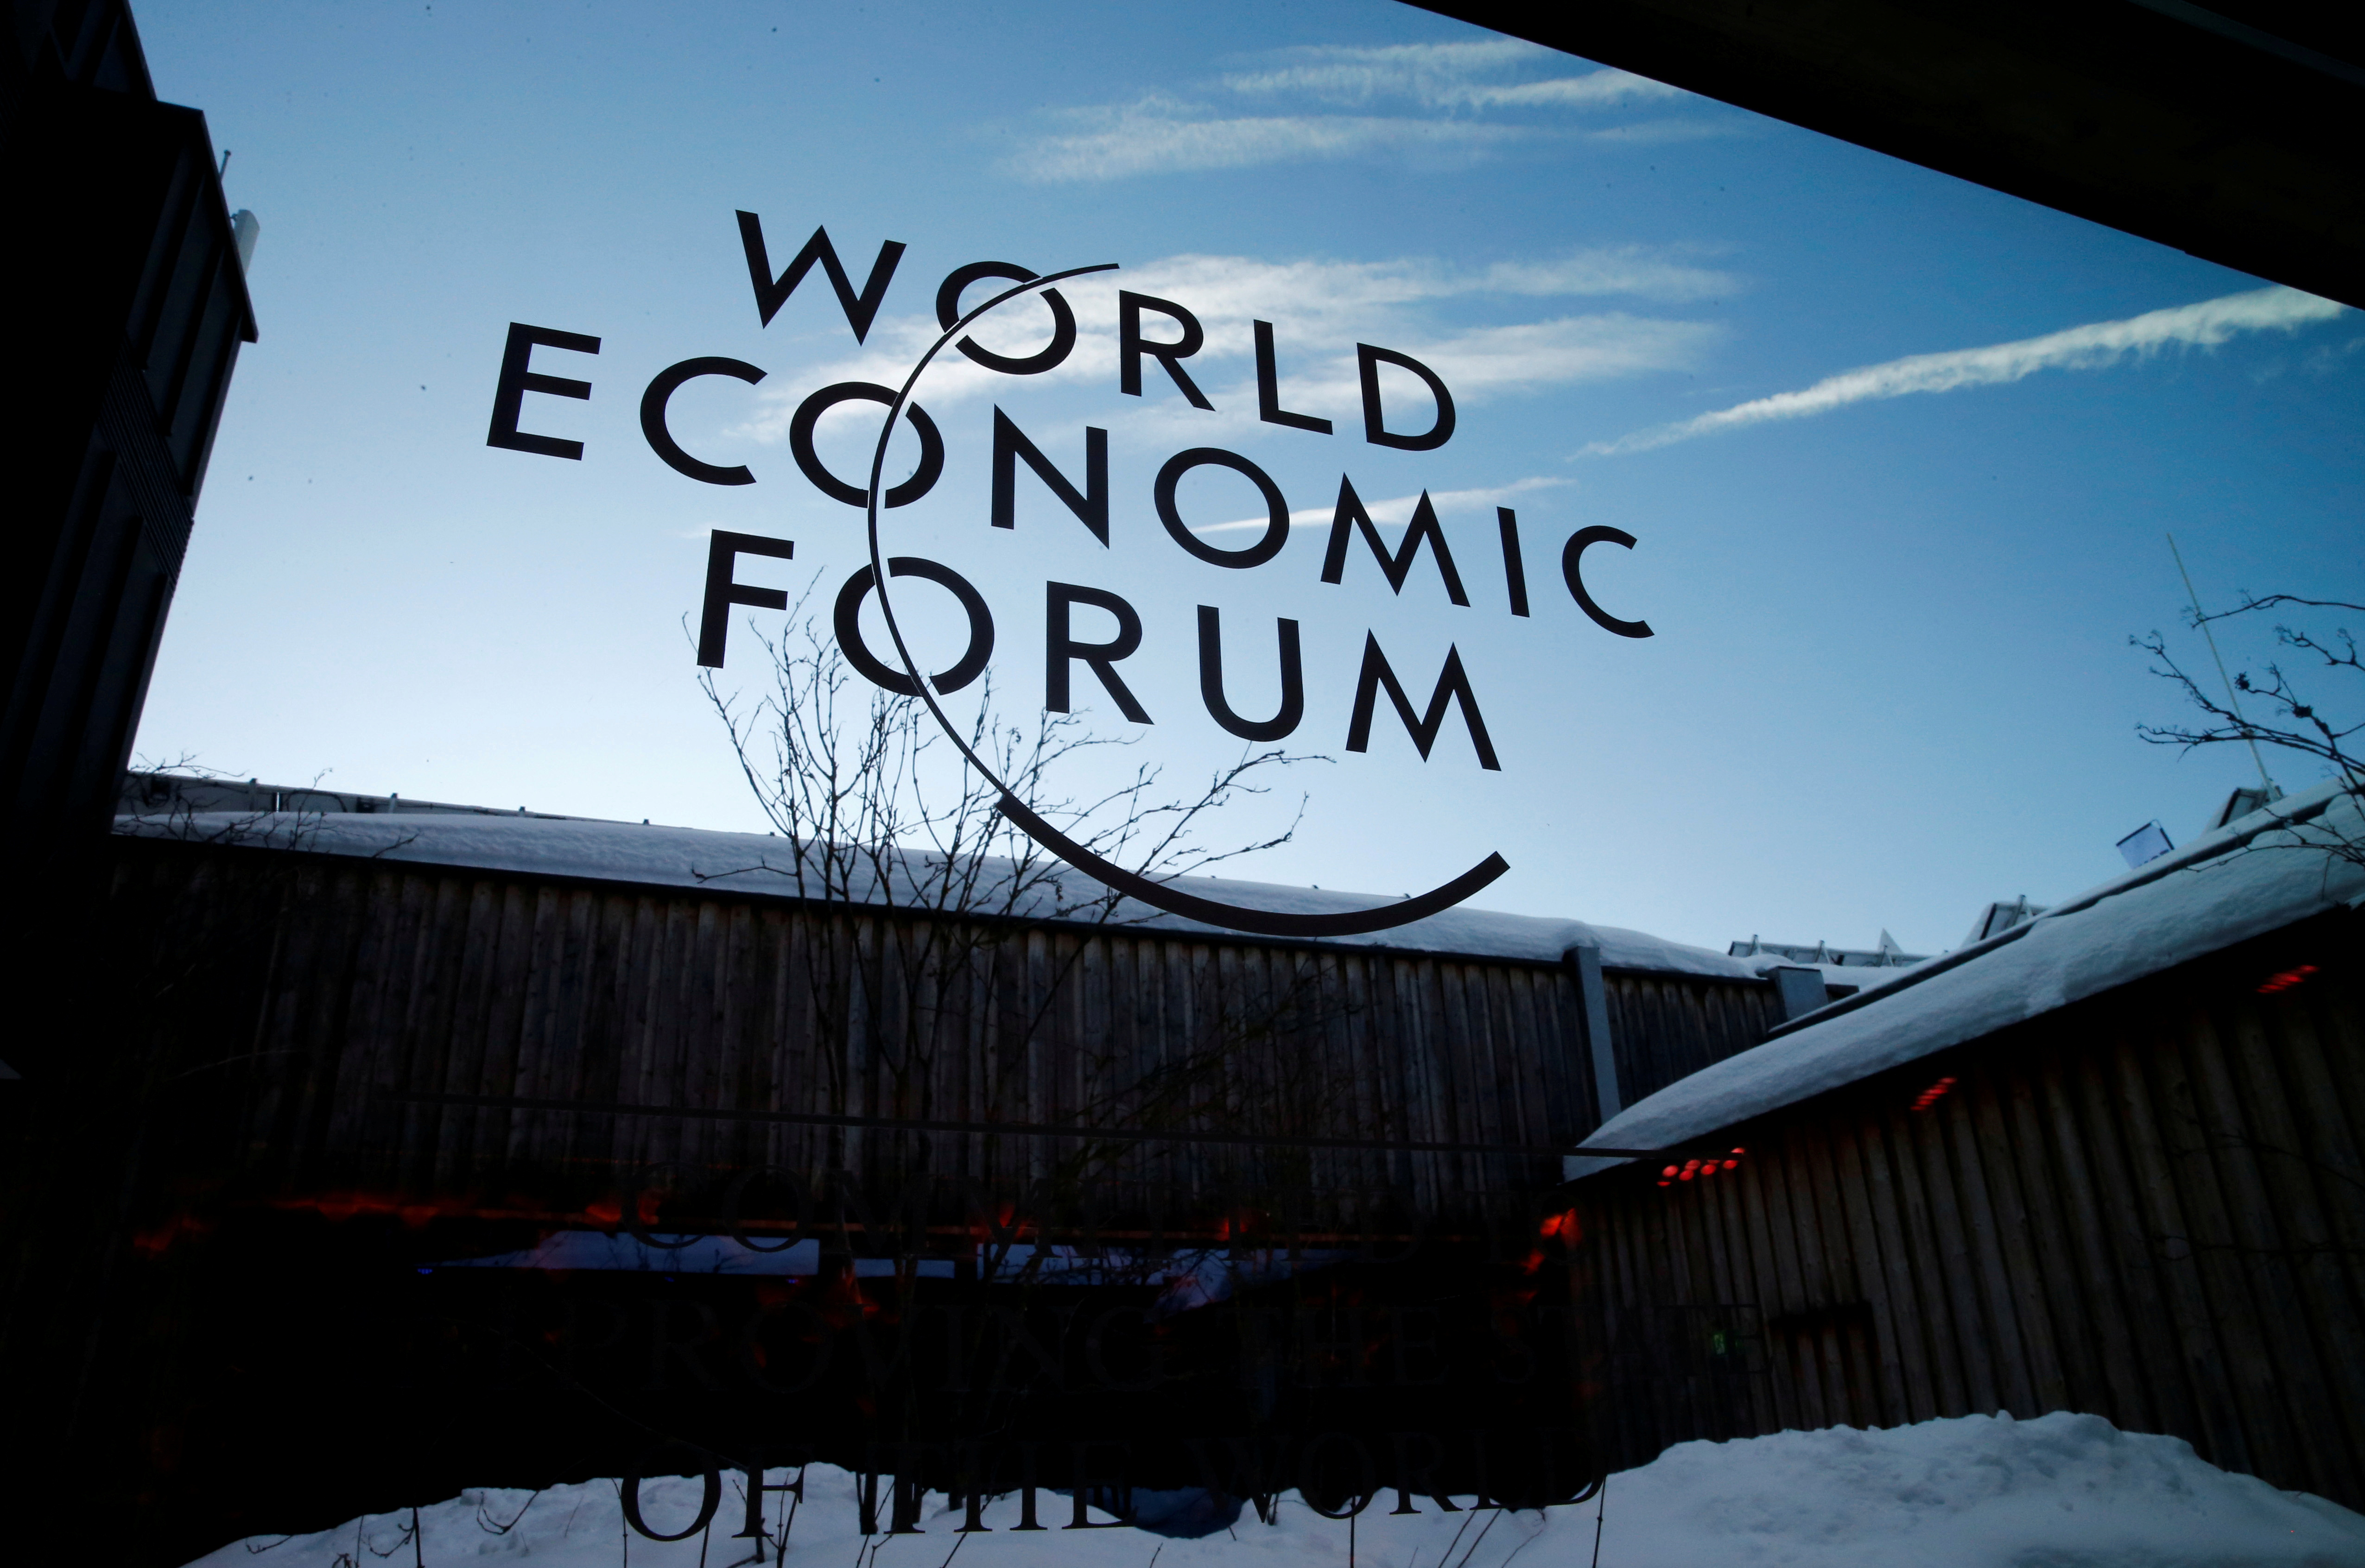 A logo of the 50th World Economic Forum (WEF) annual meeting is pictured on a window in Davos, Switzerland, January 21, 2020. REUTERS/Denis Balibouse/File Photo